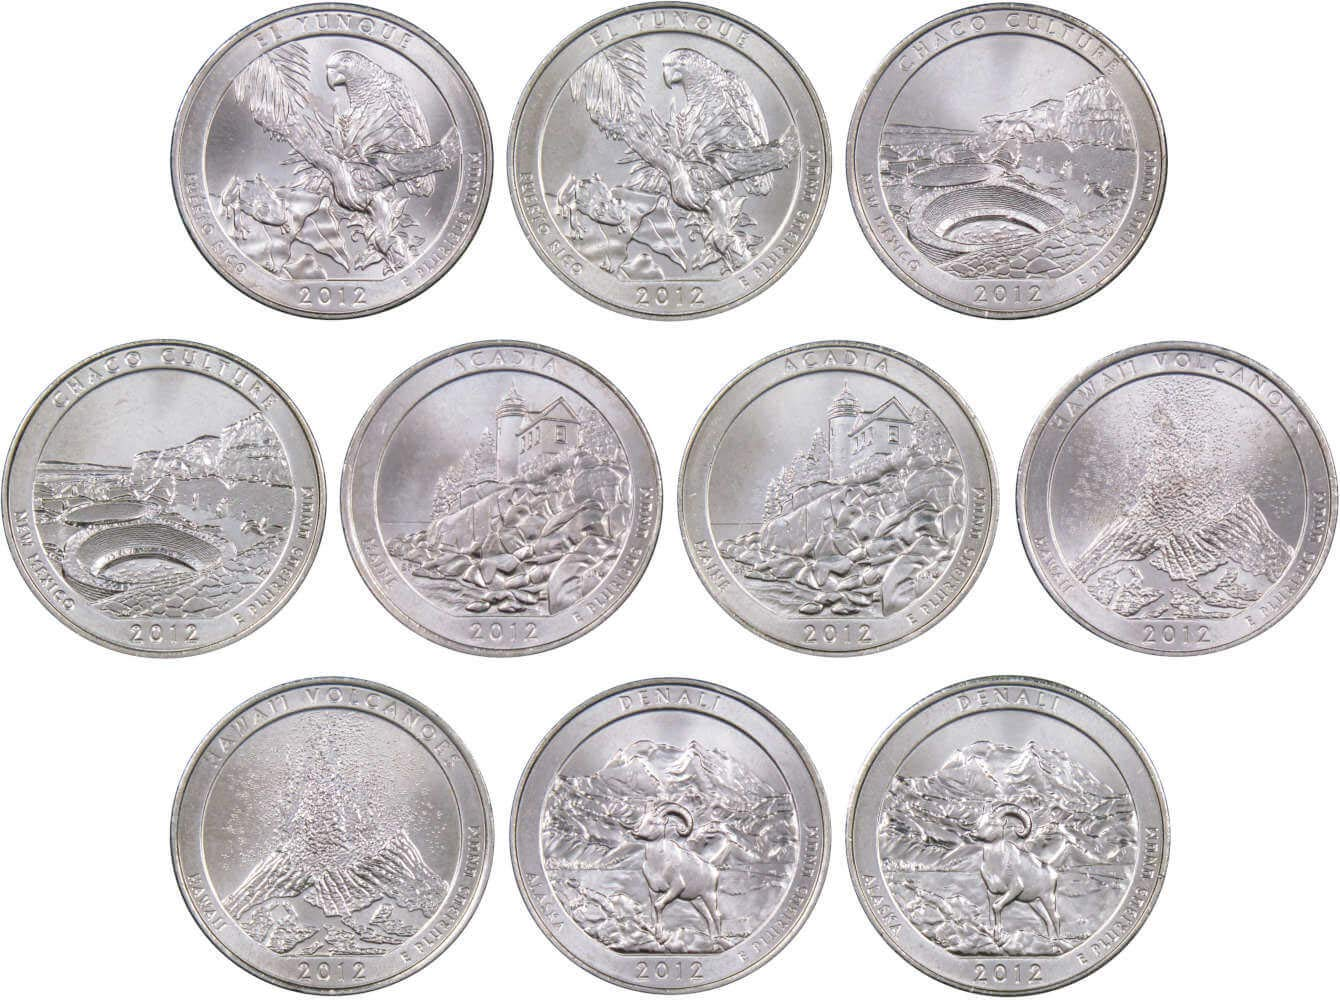 UNCIRCULATED ALL 10 COINS 2018 P/&D ATB NATIONAL PARK QUARTER COLLECTION